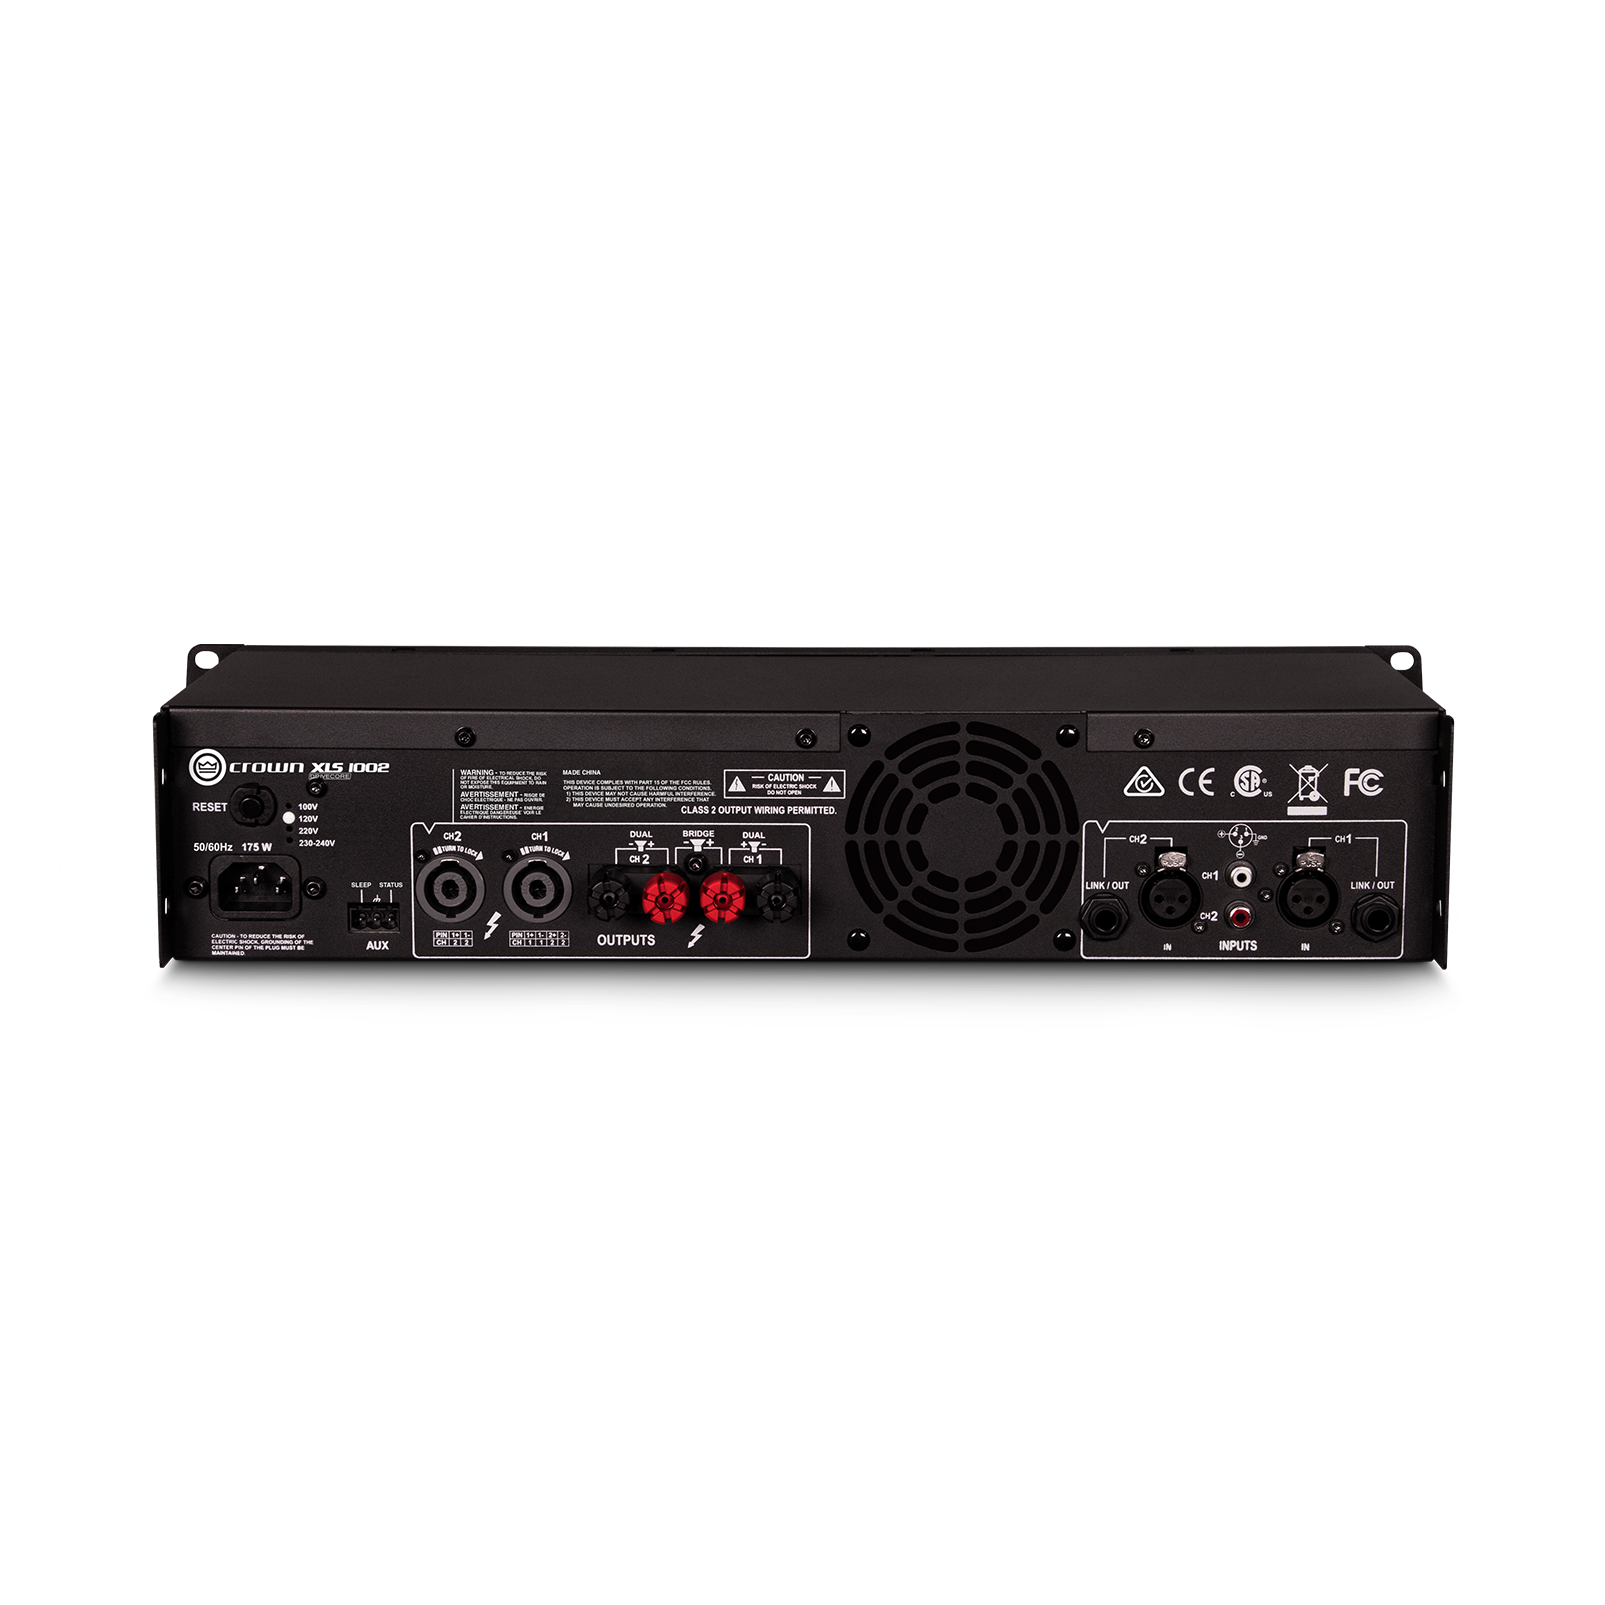 XLS 1002 - Black - Two-channel, 350W @ 4Ω power amplifier - Back